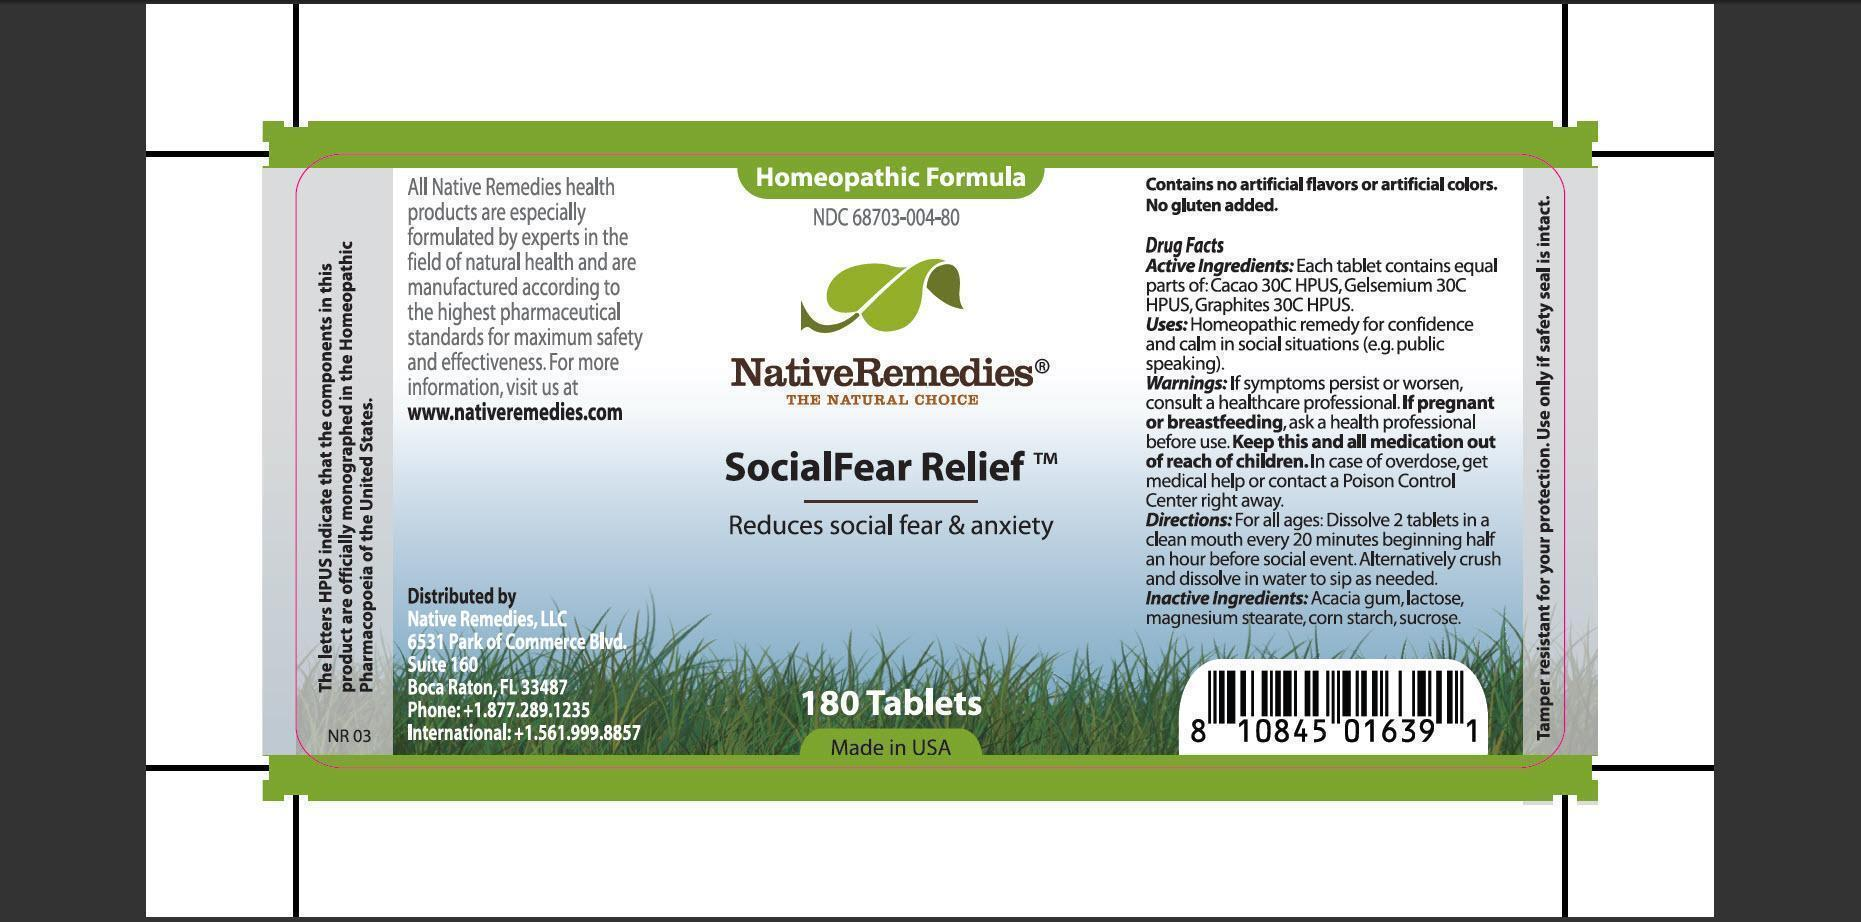 Socialfear Relief (Cacao, Gelsemium, Graphites, Acacia Gum, Lactose, Magnesium Stearate, Corn Starch, Sucrose) Tablet [Native Remedies, Llc]